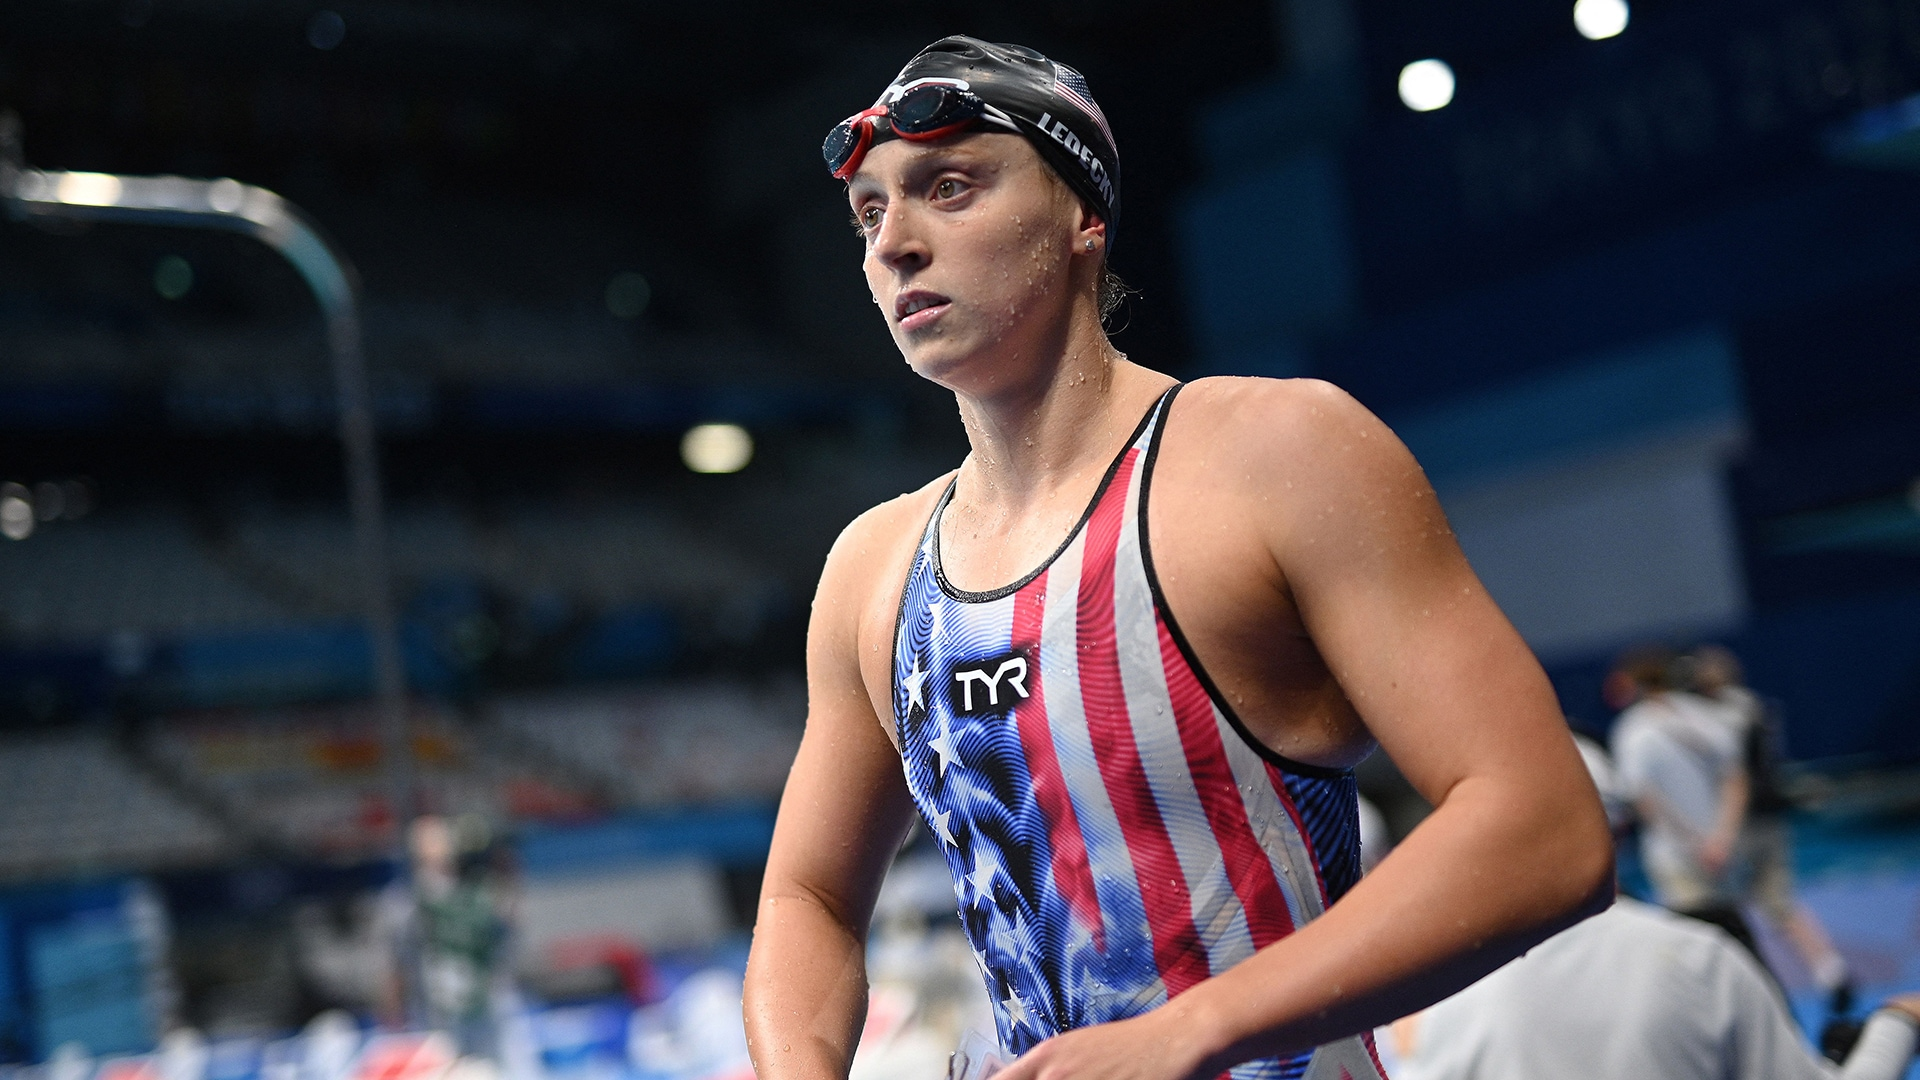 Katie Ledecky is primed for a historic freestyle double never before attempted at the Olympic...